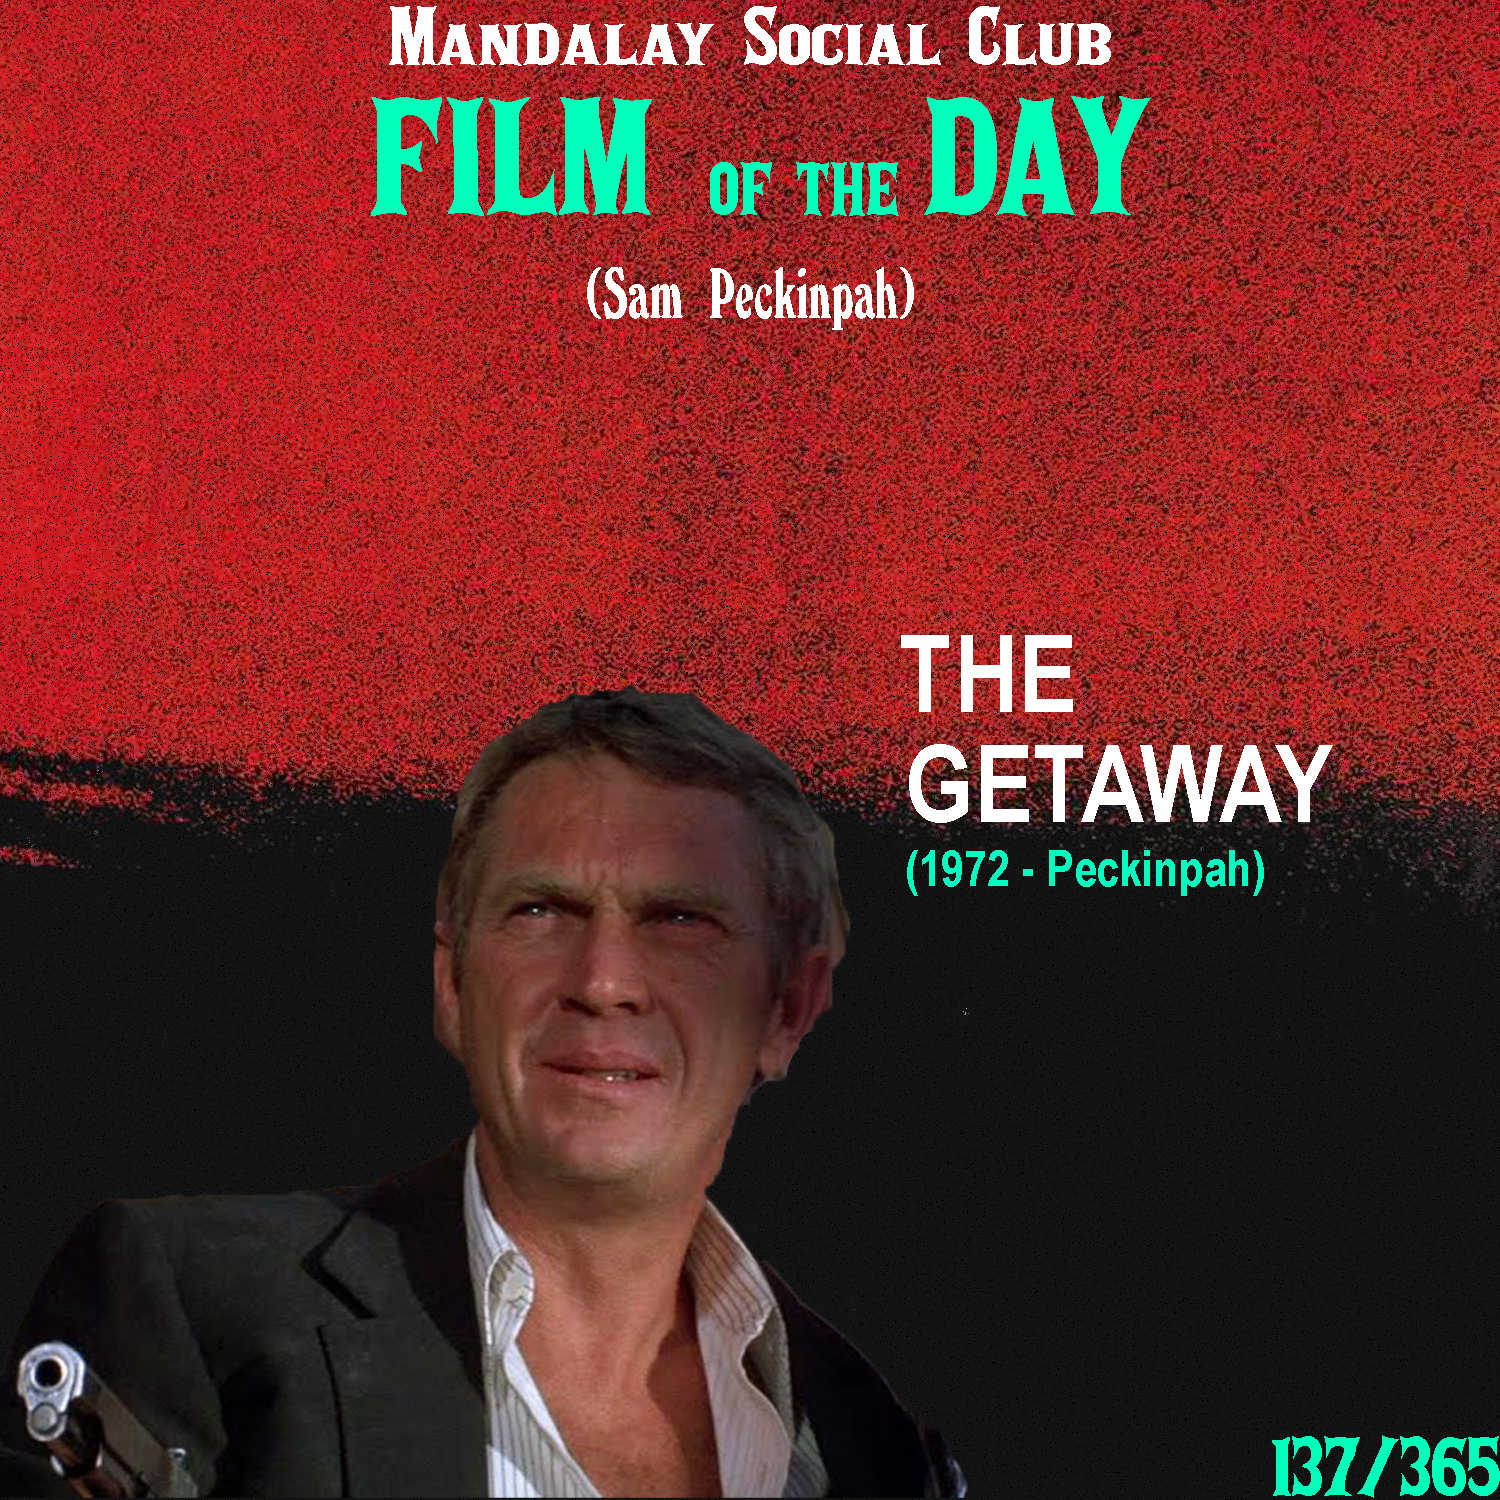 THE GETAWAY     (dir. Sam Peckinpah)   After working w/ Peckinpah on  Junior Bonner , McQueen was eager to work with Peckinpah again. Their next venture together,  The Getaway , went on to completely overshadow the previous collaboration between the two.   The Getaway  shows Peckinpah venturing into Neo-Noir territory for the first time in his career. The film stars Steve McQueen as Doc McCoy, an inmate who gets released from prison thanks to a sexual favor made by his girlfriend to a very powerful oil magnate named Jack Beynon. When out of prison, McCoy must further return the favor to Beynon by carrying out a bank heist for him. However, in keeping with classic noir standards, a series of double crosses leave McCoy and his girlfriend alone in an untrusting world.  Peckinpah was known for his Westerns throughout his career, but he got a chance to stretch out of that territory, while still placing this Neo-Noir in typical Western locations (including Mexico) that Peckinpah fetishized over. Compared to  Junior Bonner , Peckinpah went back to his roots for a more explicitly violent film that holds up in the ranks much closer to  The Wild Bunch ,  Straw Dogs , and  Bring Me the Head of Alfredo Garcia .    4/5     WATCH: iTunes, Putlocker (FREE)